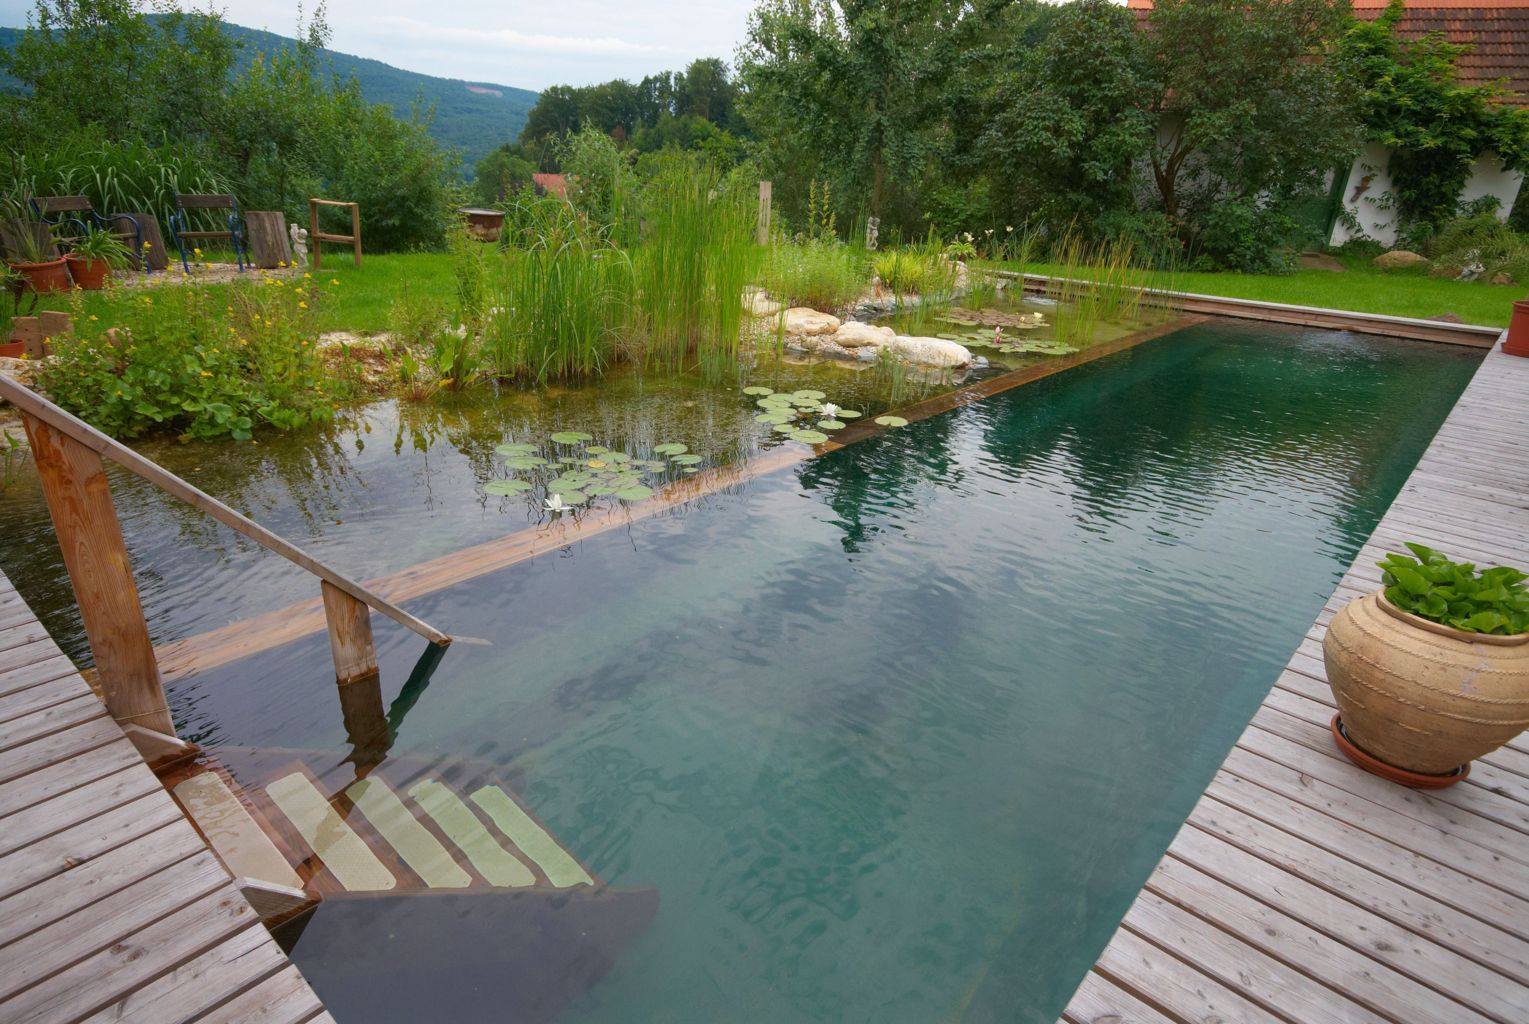 Natural swimming pool trend cleanwater pools that blend with your landscape Part 10